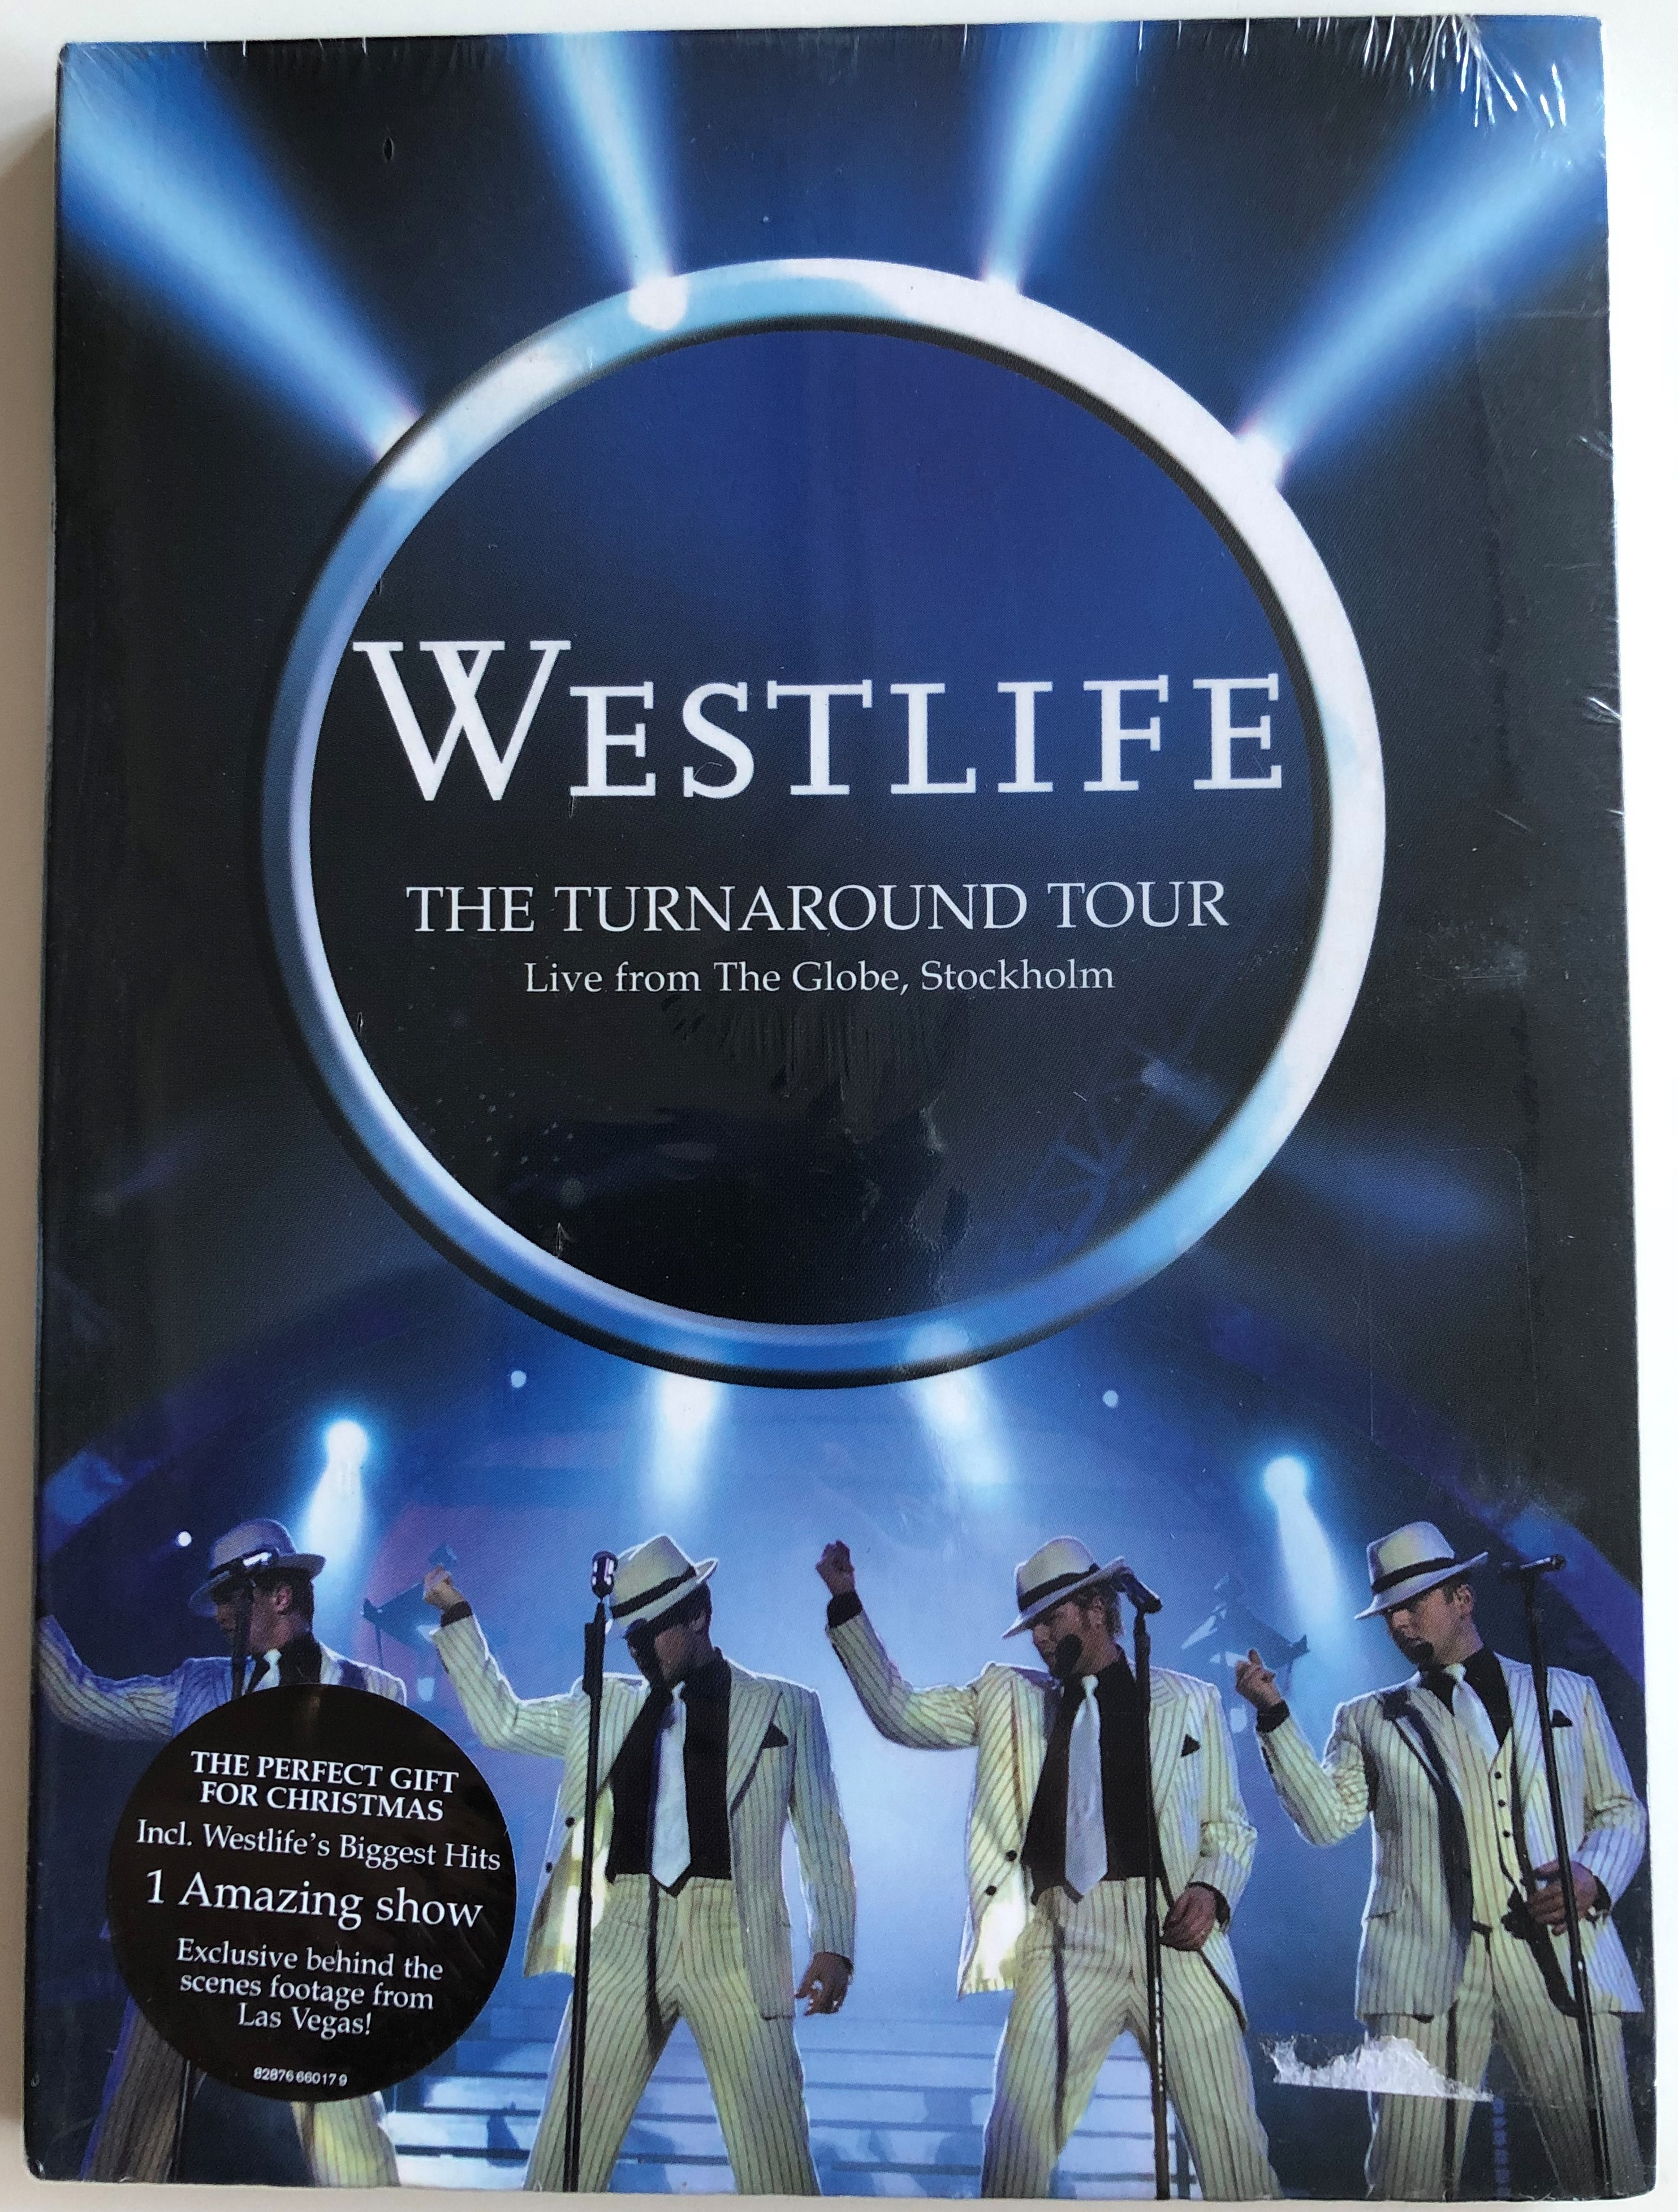 Westlife - The Turnaround Tour DVD 2004 Live from The Globe 1.JPG